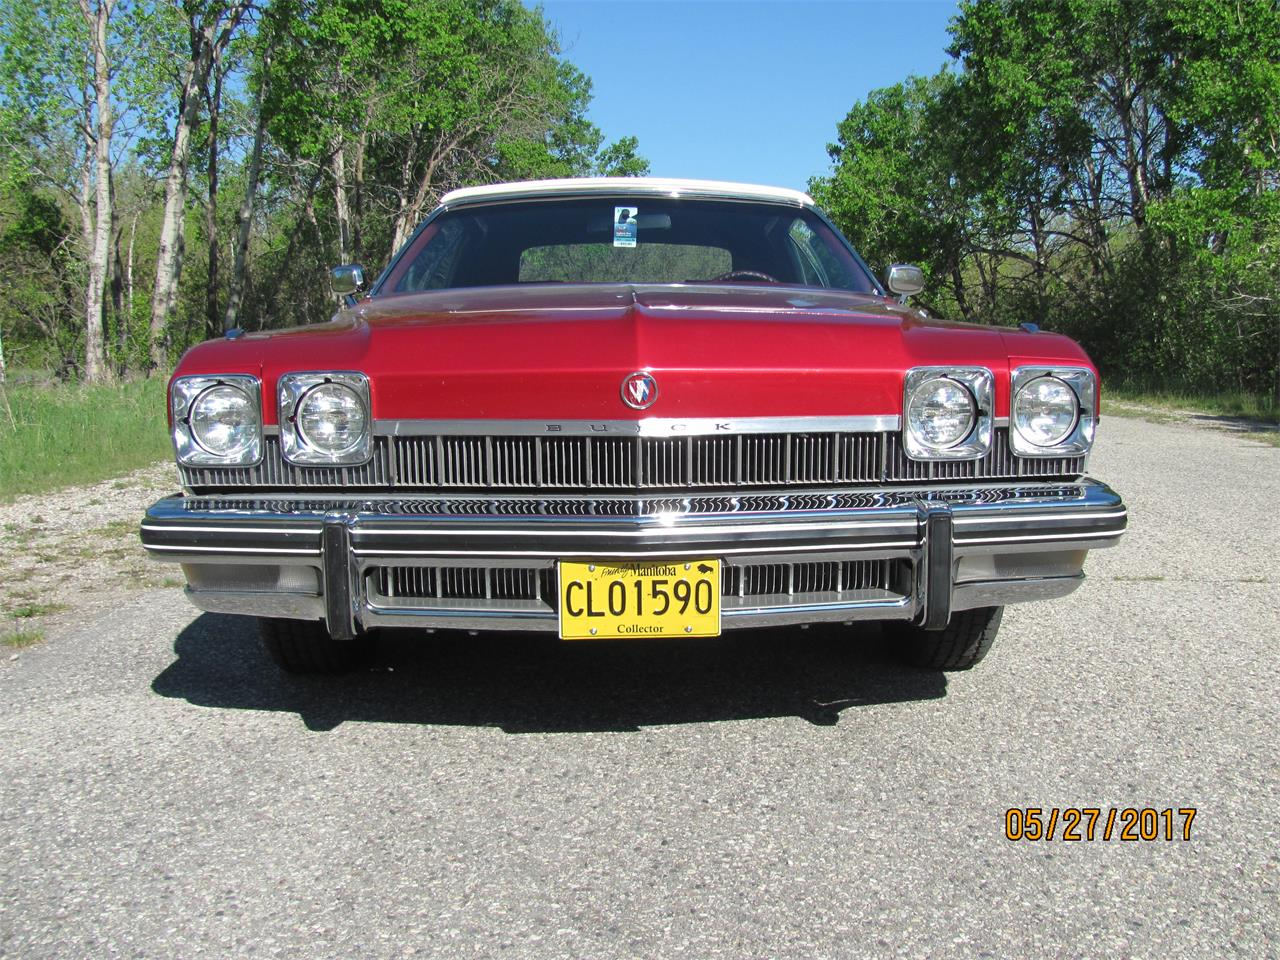 Large Picture of 1974 Buick LeSabre located in Manitoba - $15,500.00 Offered by a Private Seller - NE2D